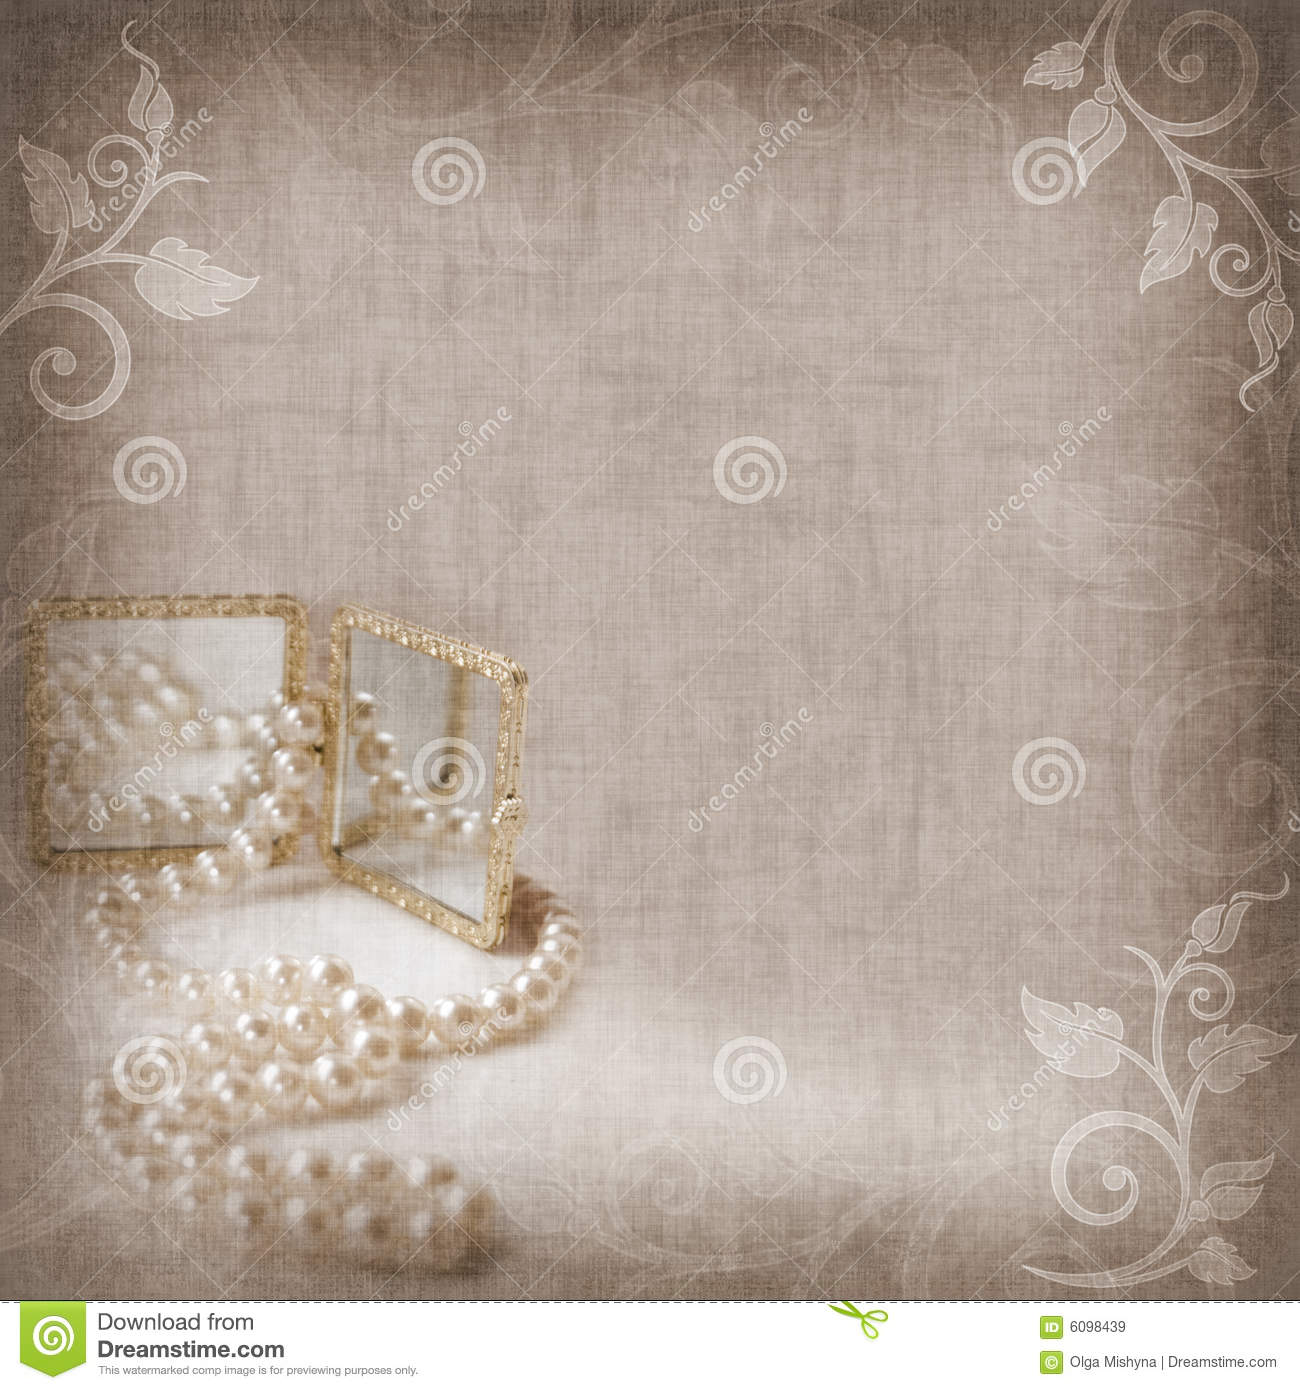 Wedding holiday or anniversary background royalty free